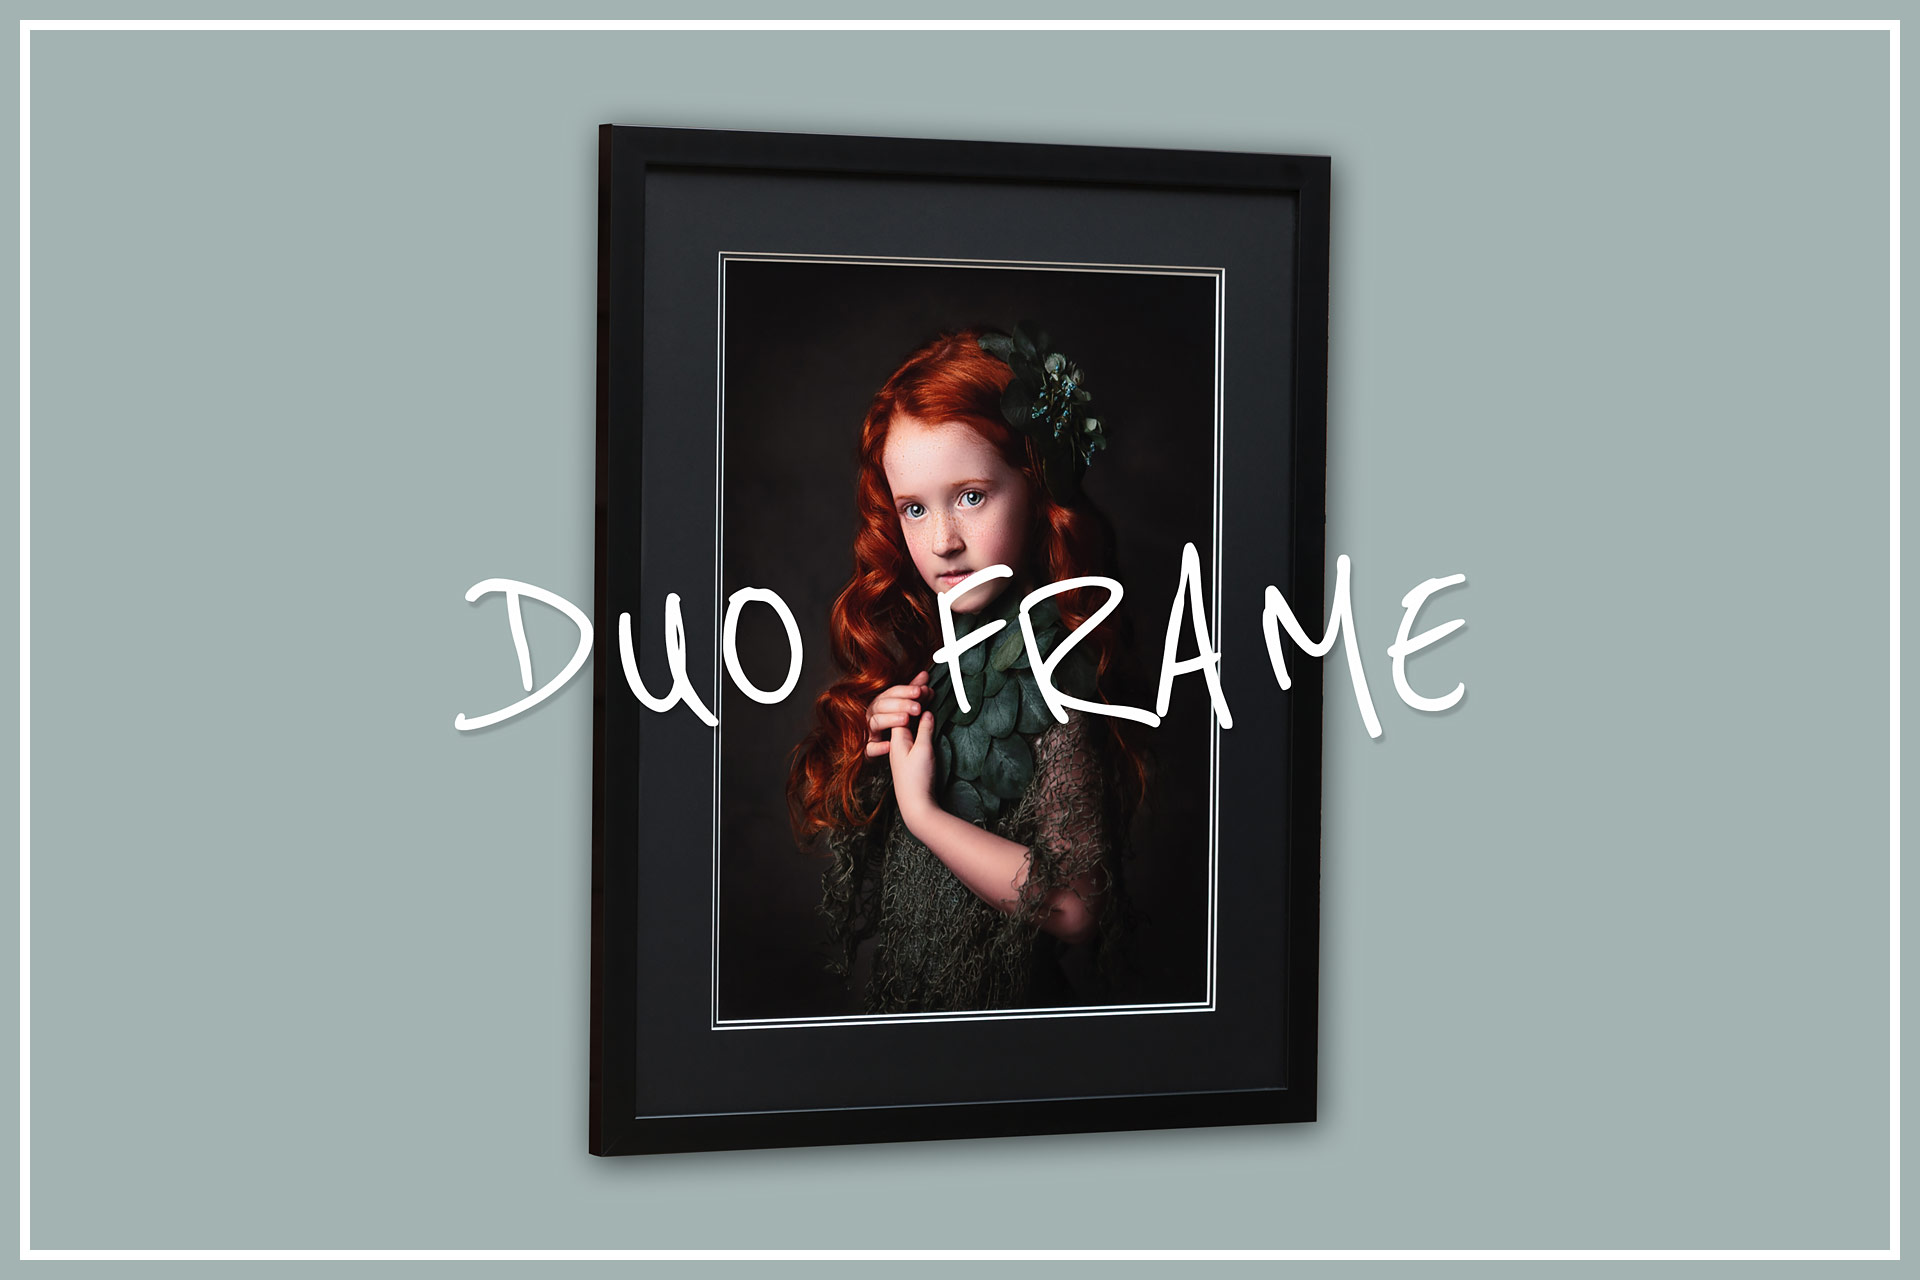 Duo Frame